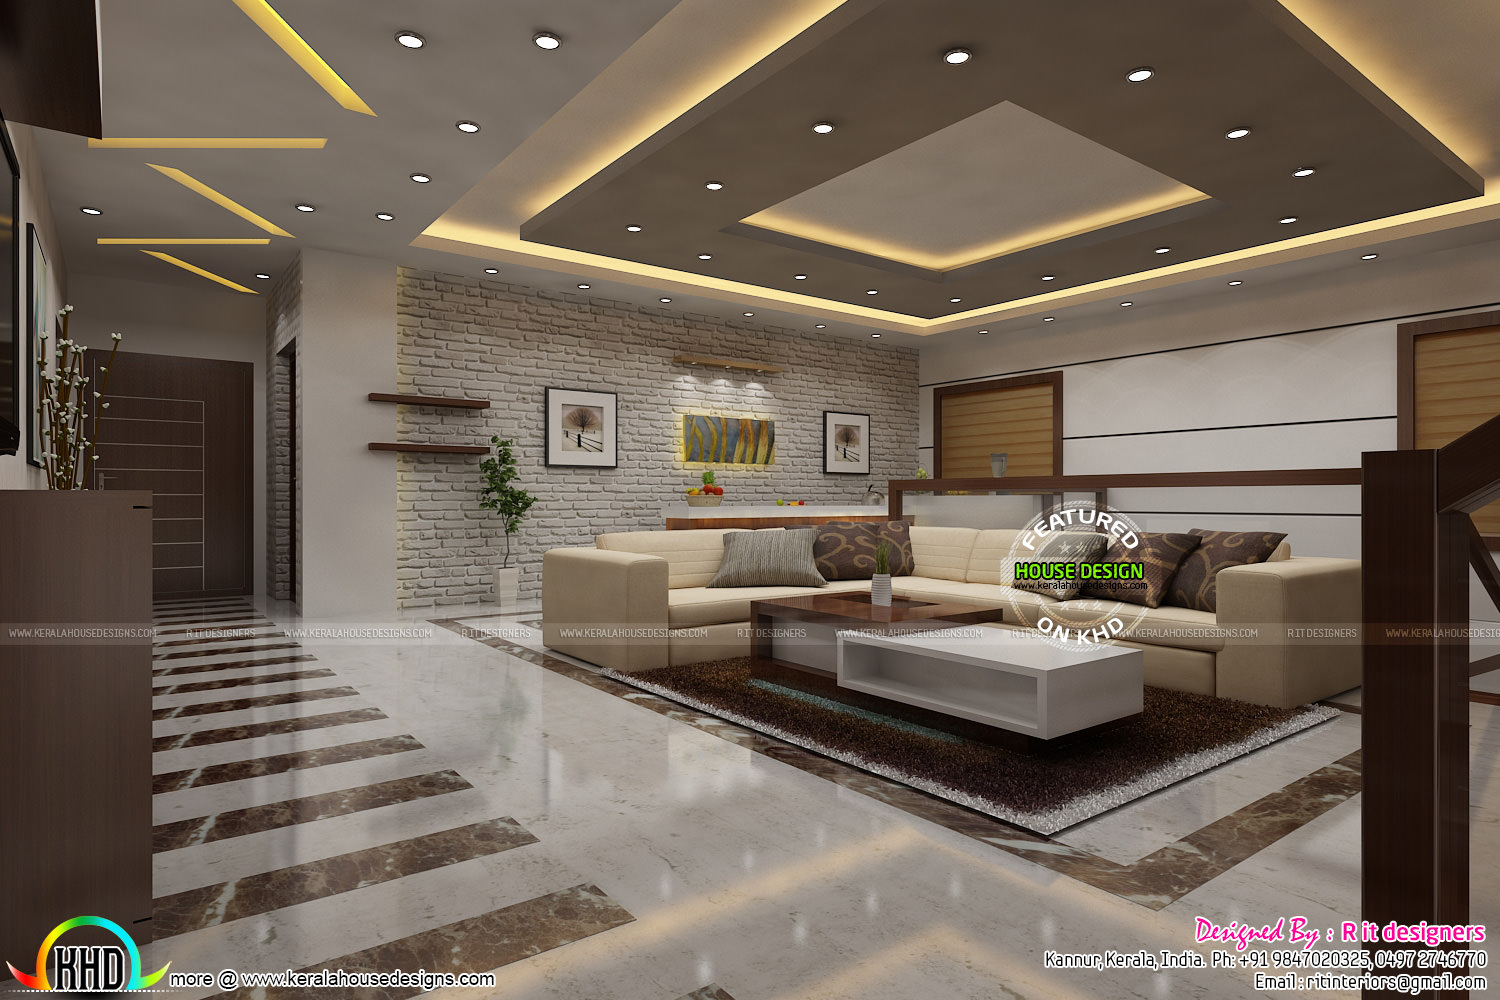 Most modern kerala living room interior kerala home for Home designs 2017 kerala